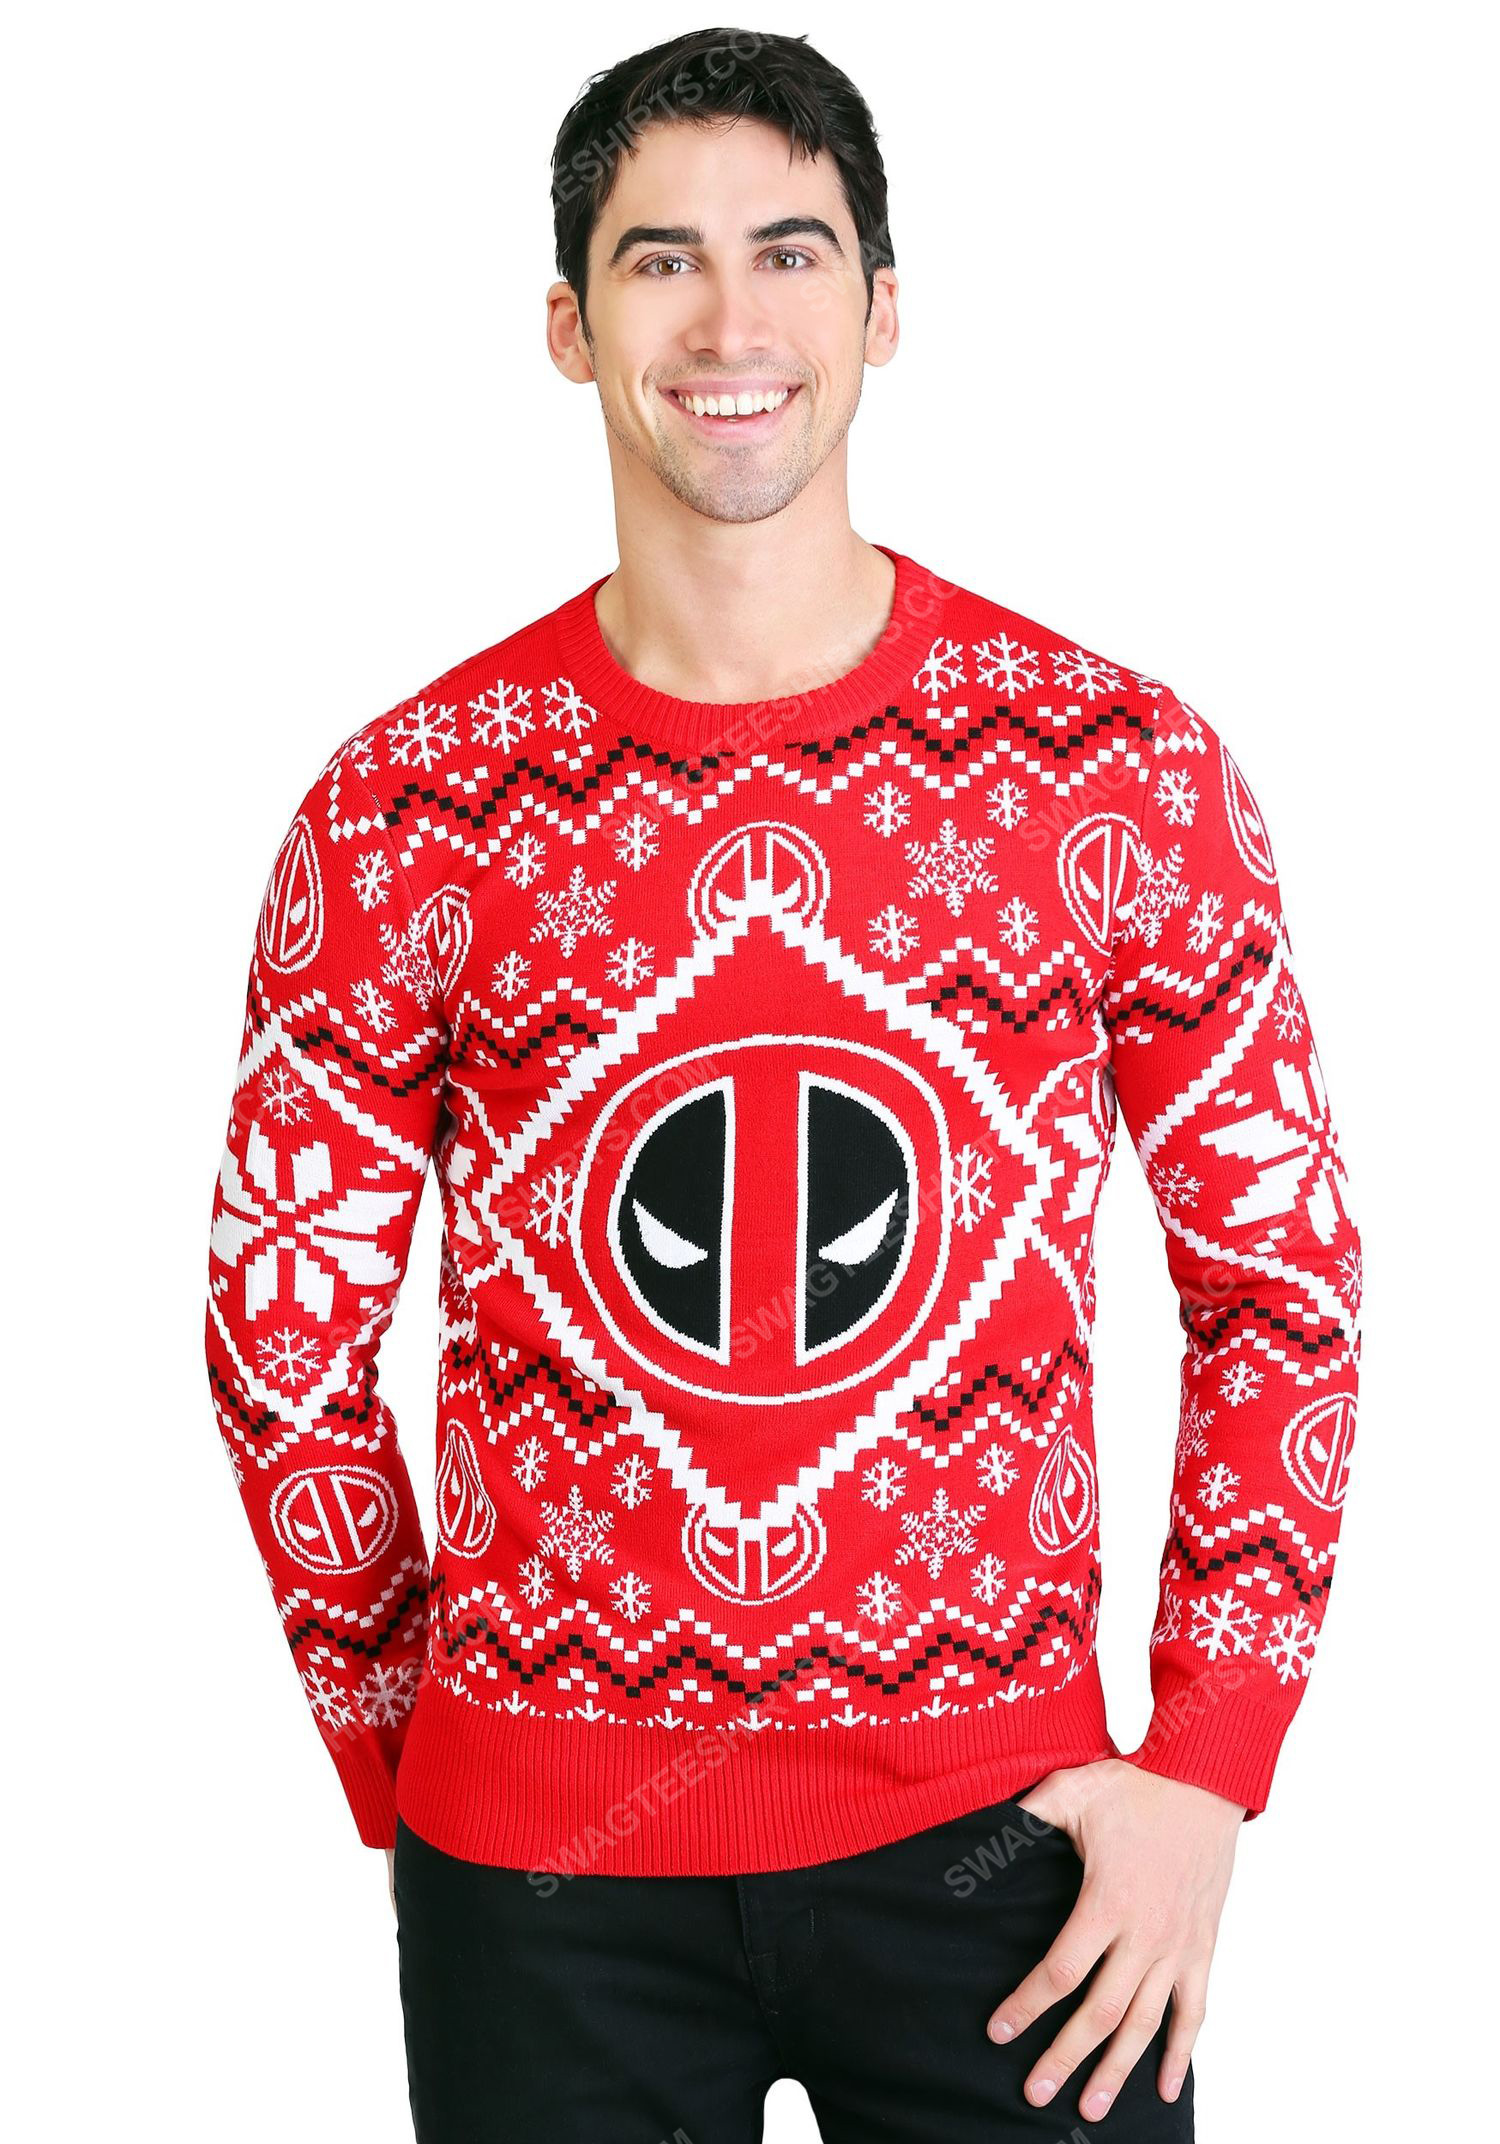 The deadpool icon full print ugly christmas sweater 1 - Copy (2)